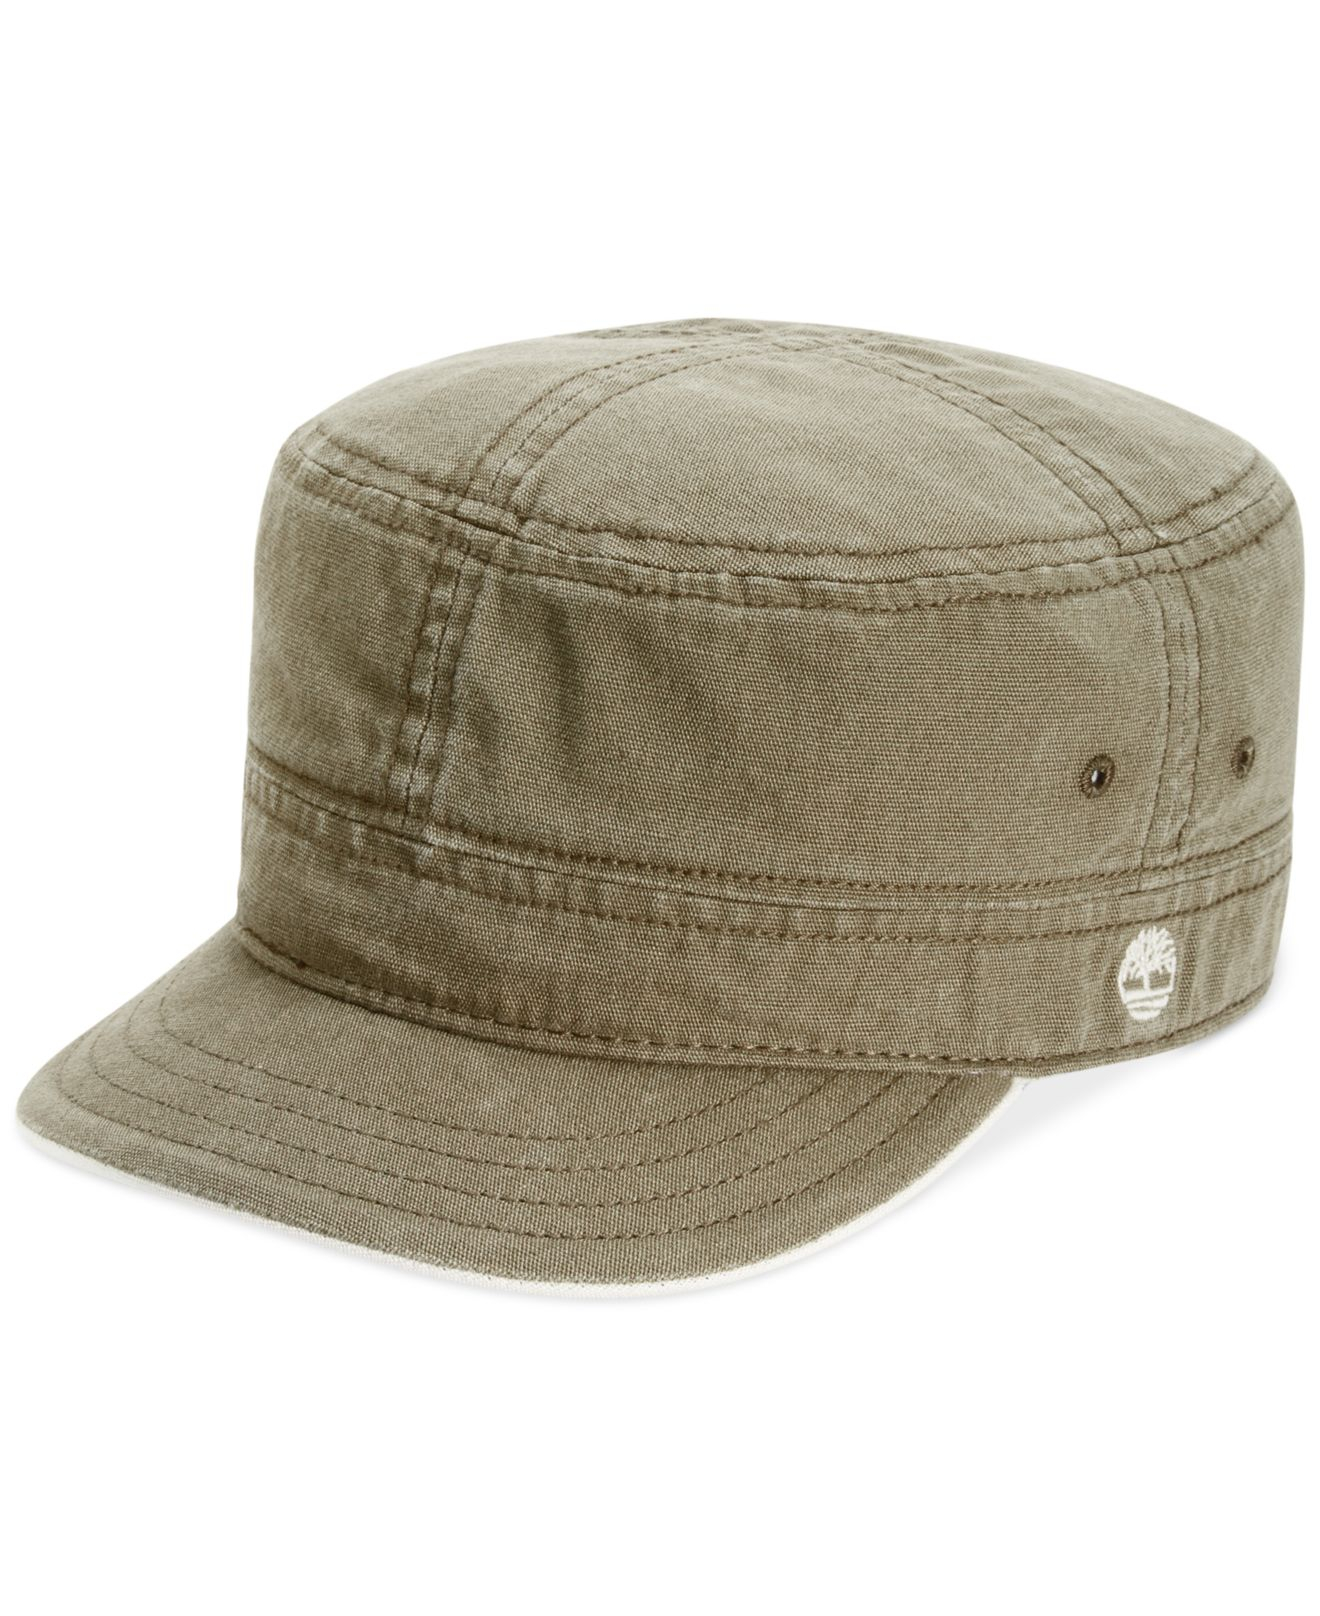 Lyst - Timberland Organic Cotton Field Cap in Green for Men aa482bbcb2e5